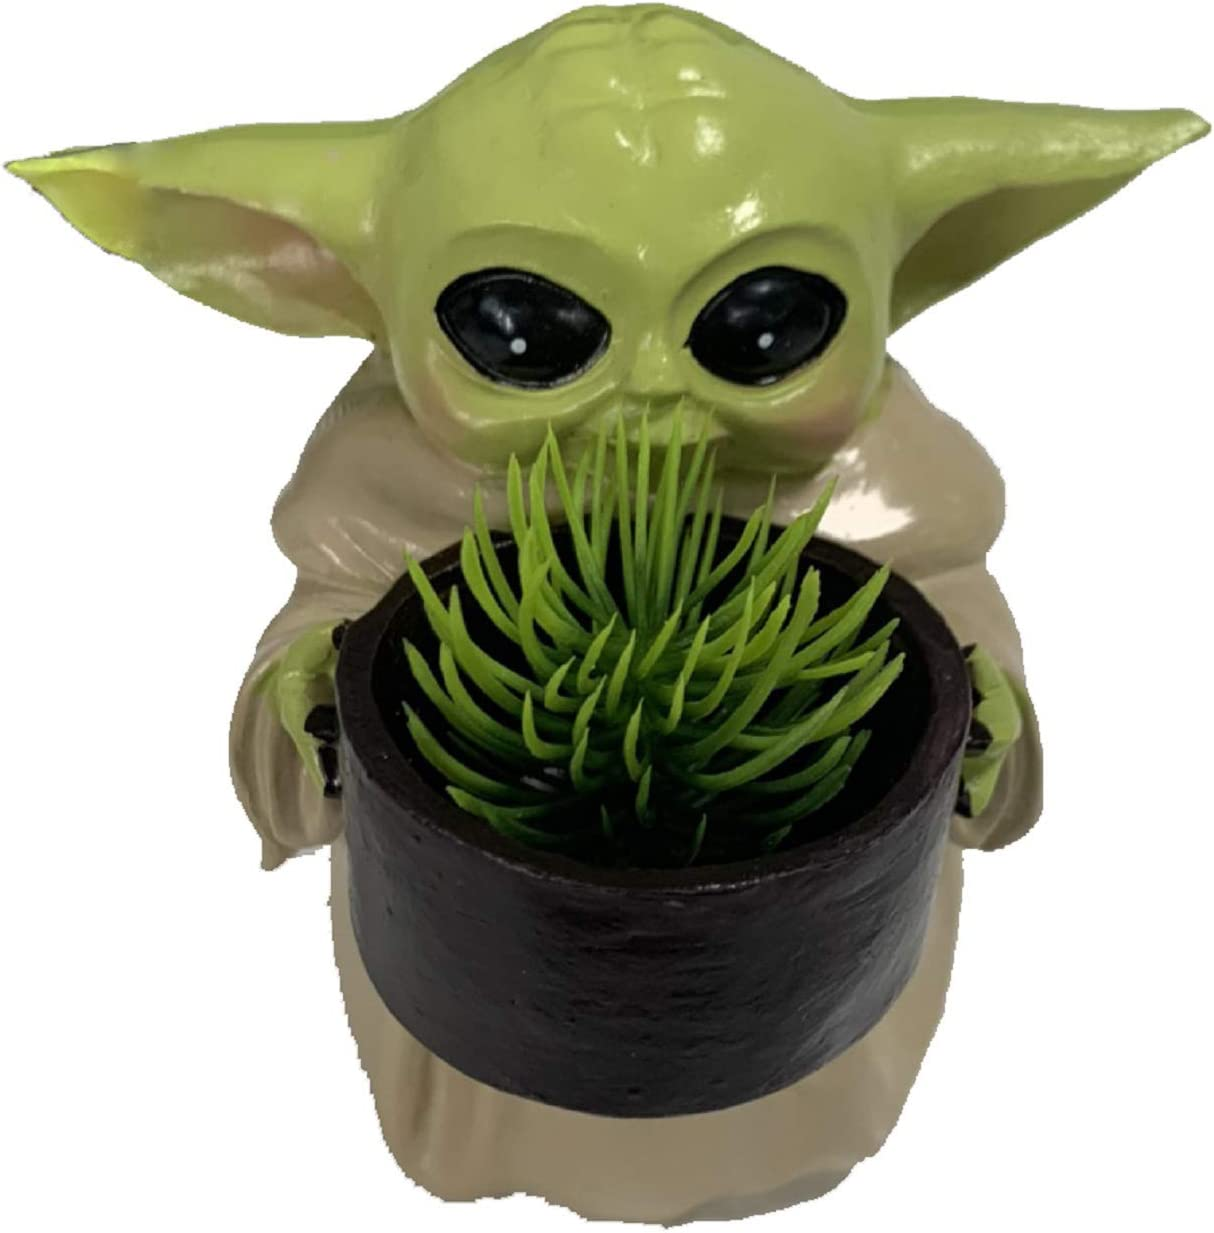 Baby Yoda Planter Pot Creative Resin Ornament Flower Pot with Hole Star Wars Mandalorian The Bounty Collection 4.2 inch ''The Child Holding Cup'' Home Decor Collectible Toy Figure Gift (1 Pack)